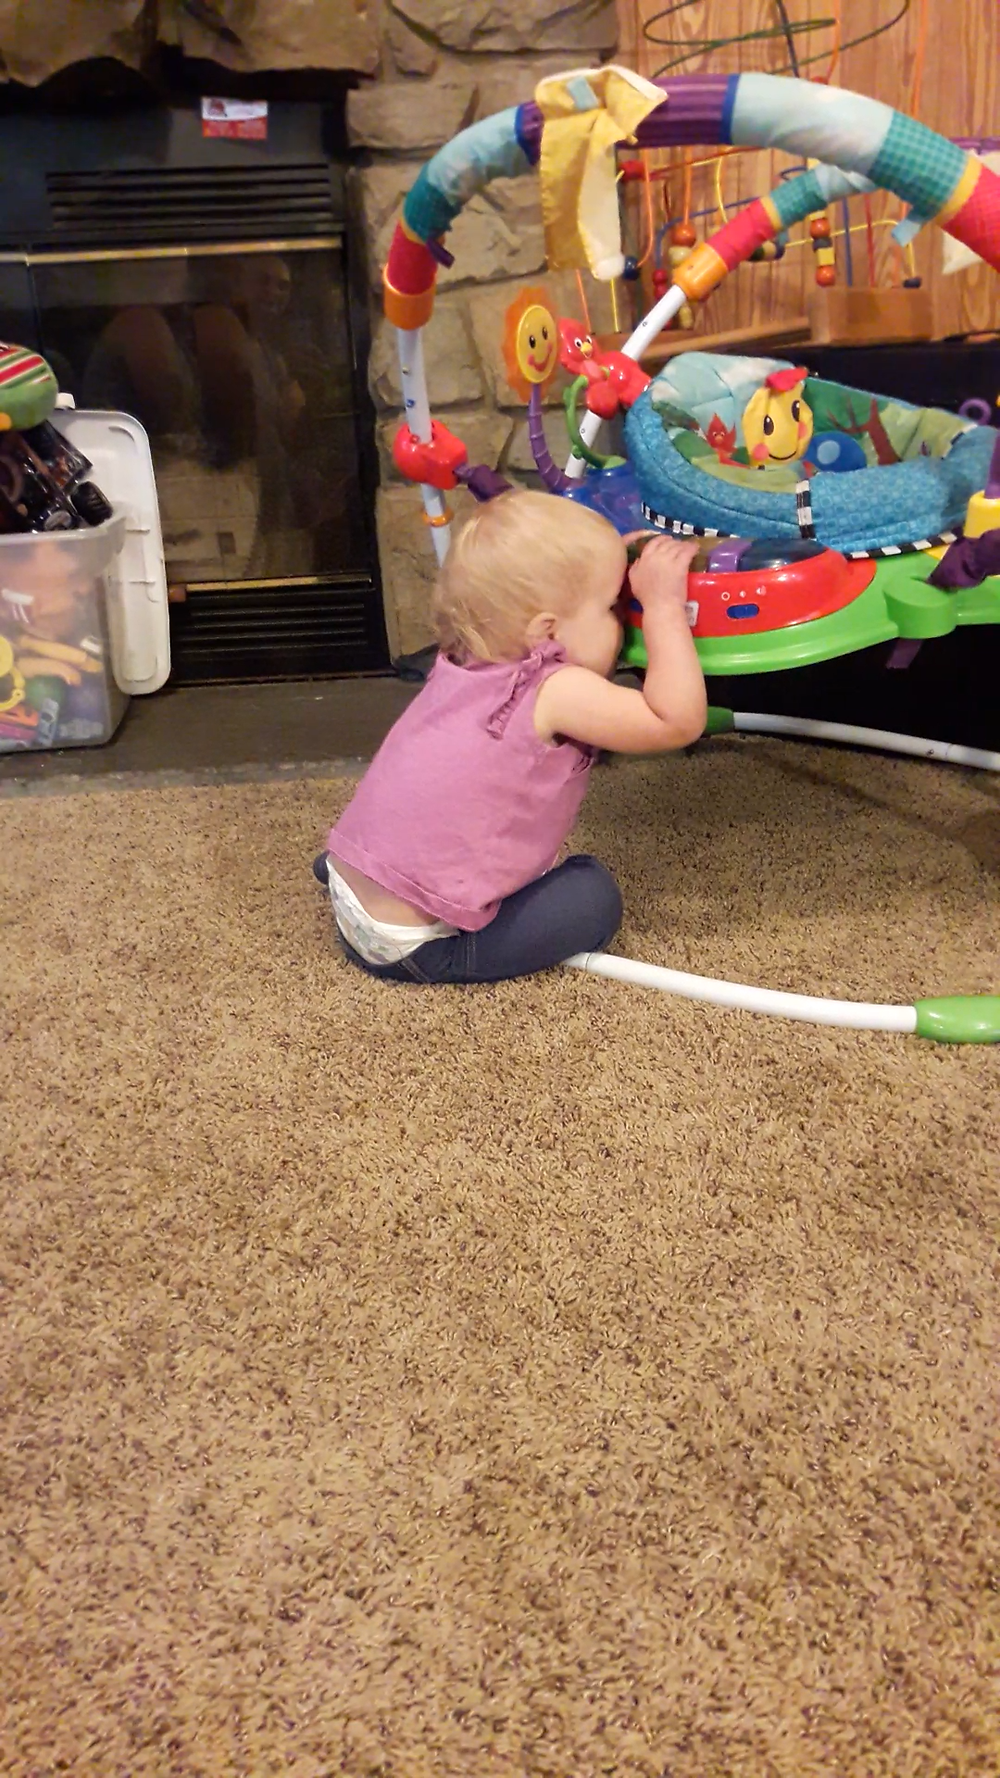 15-month-old girl sits with her mouth connected to the plastic standing baby toy